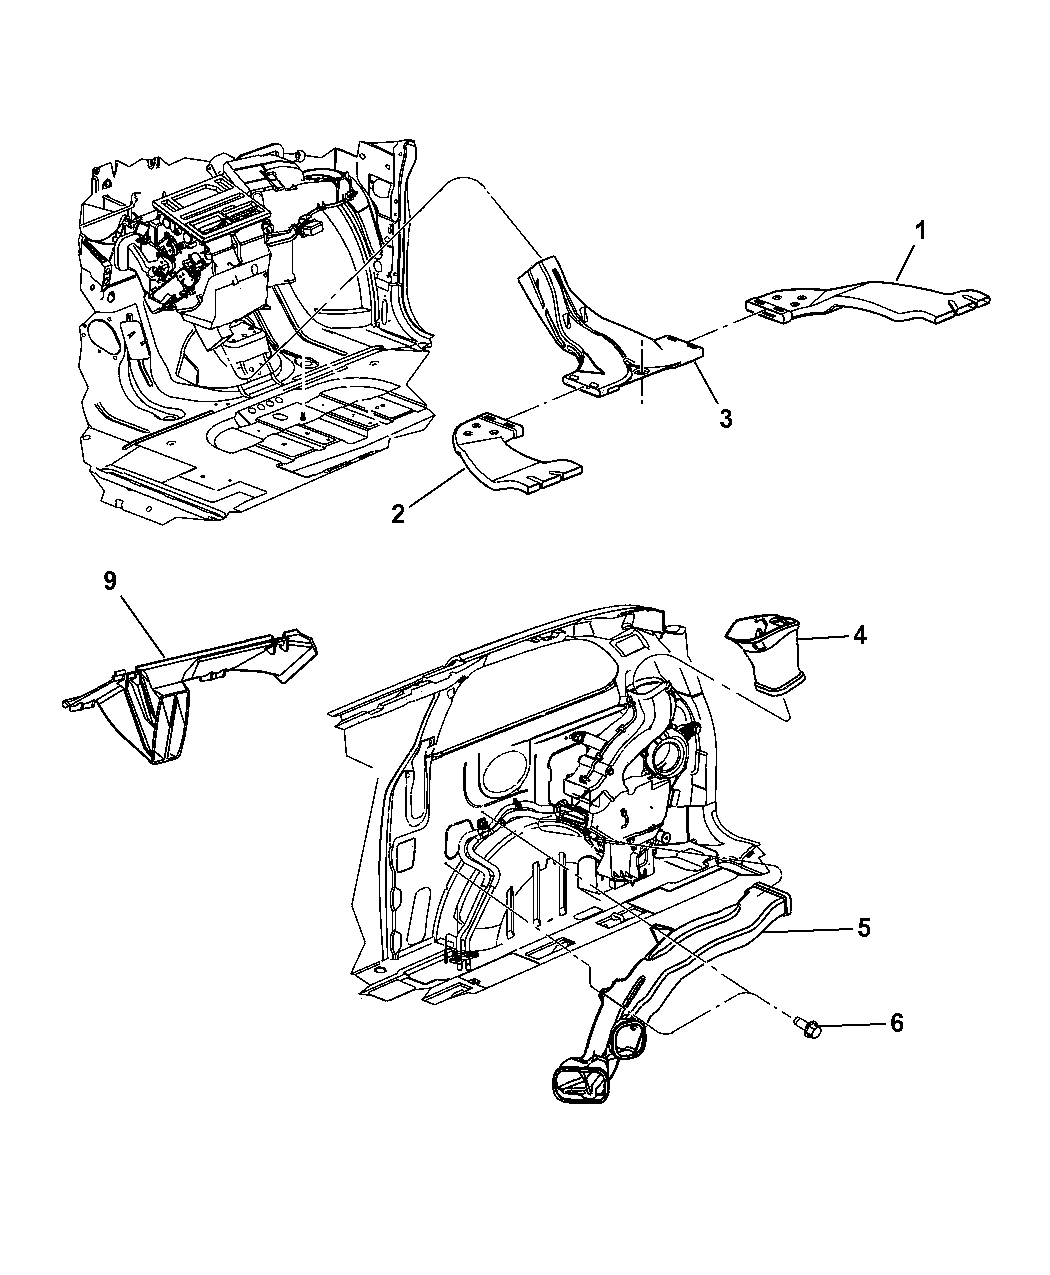 2002 Chrysler Town & Country Ducts & Outlets, Rear